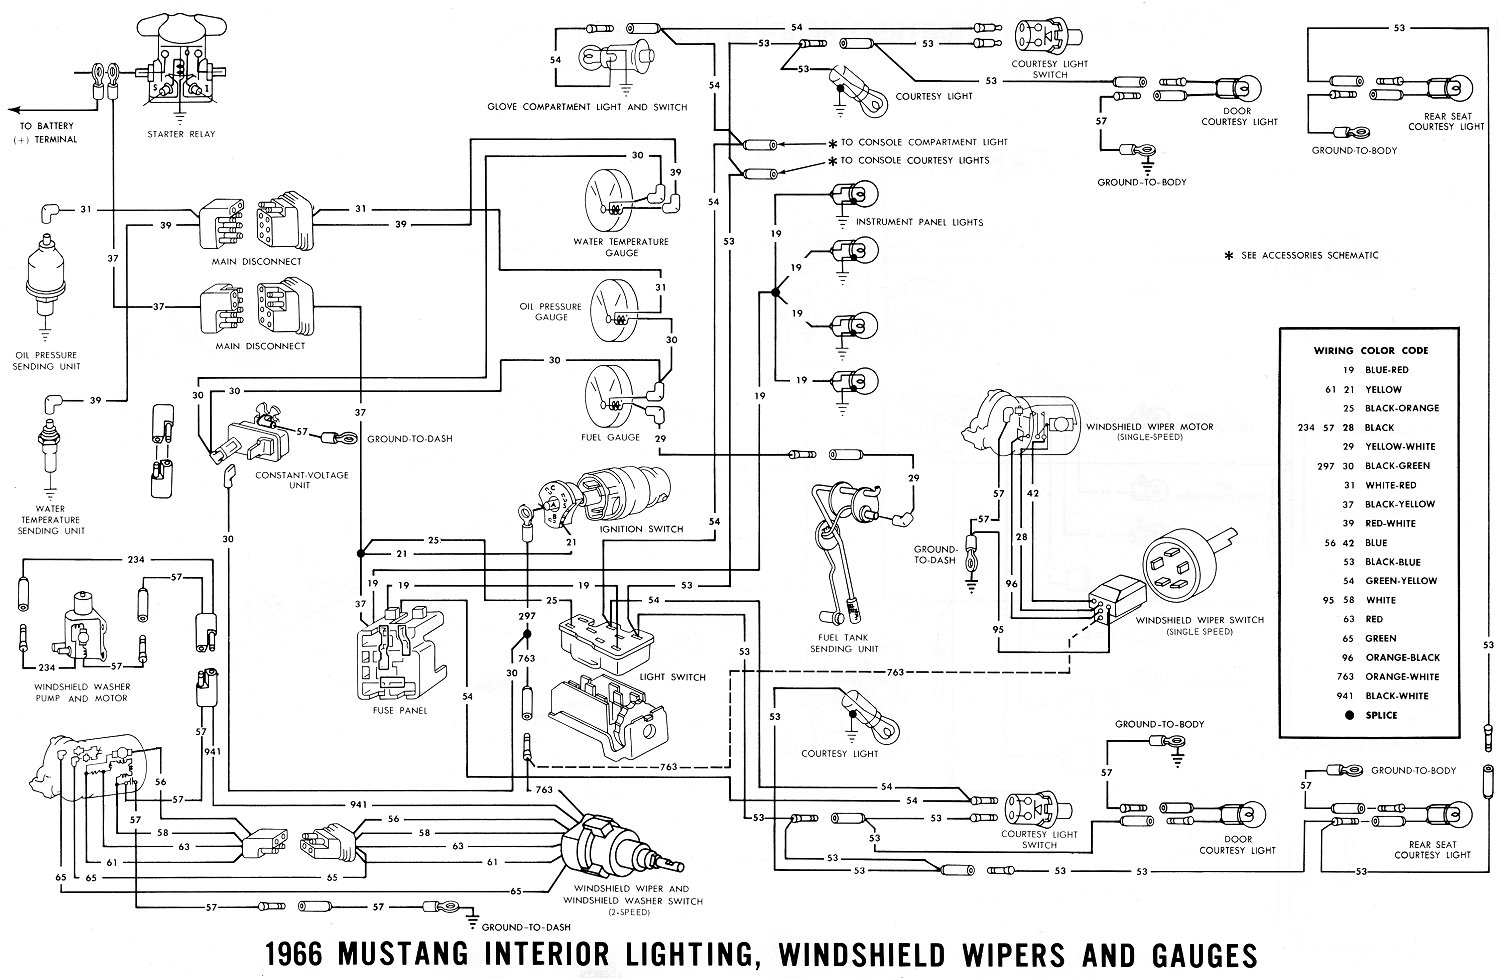 1966 Mustang Interior Lighting Diagram lelu's 66 mustang 1966 mustang wiring diagrams 1966 mustang wiring diagrams electrical schematics at nearapp.co